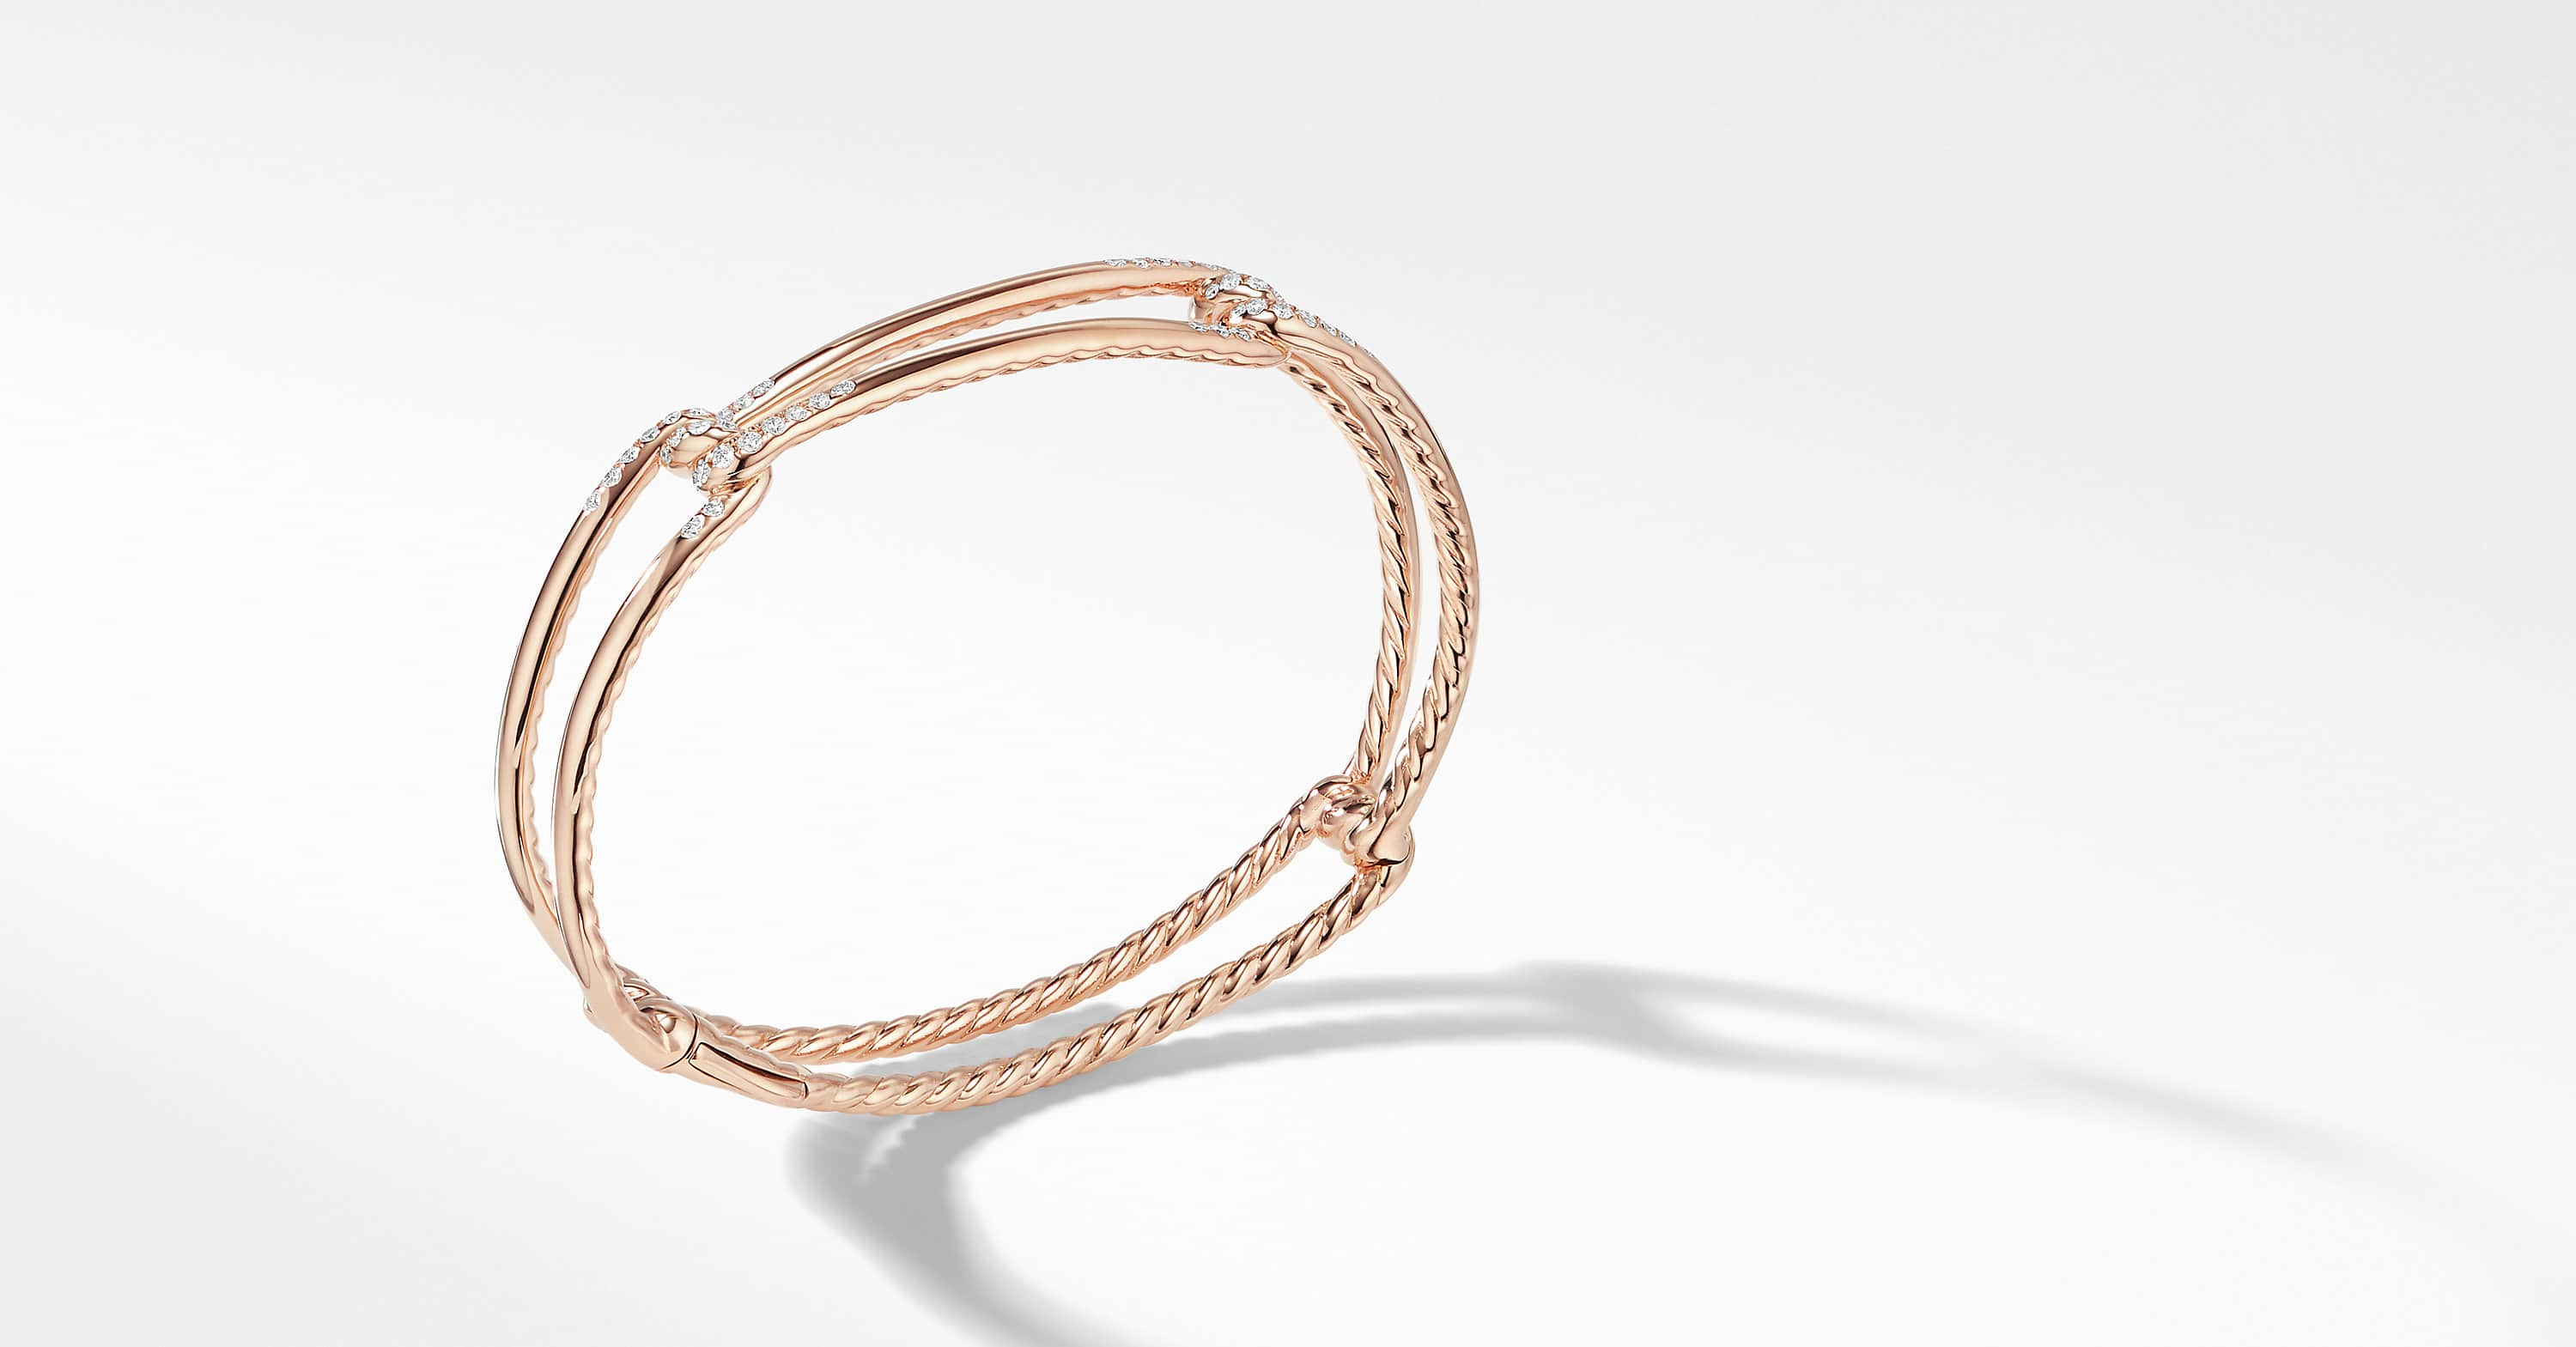 Bracelet Continuance en or rose 18K avec diamants